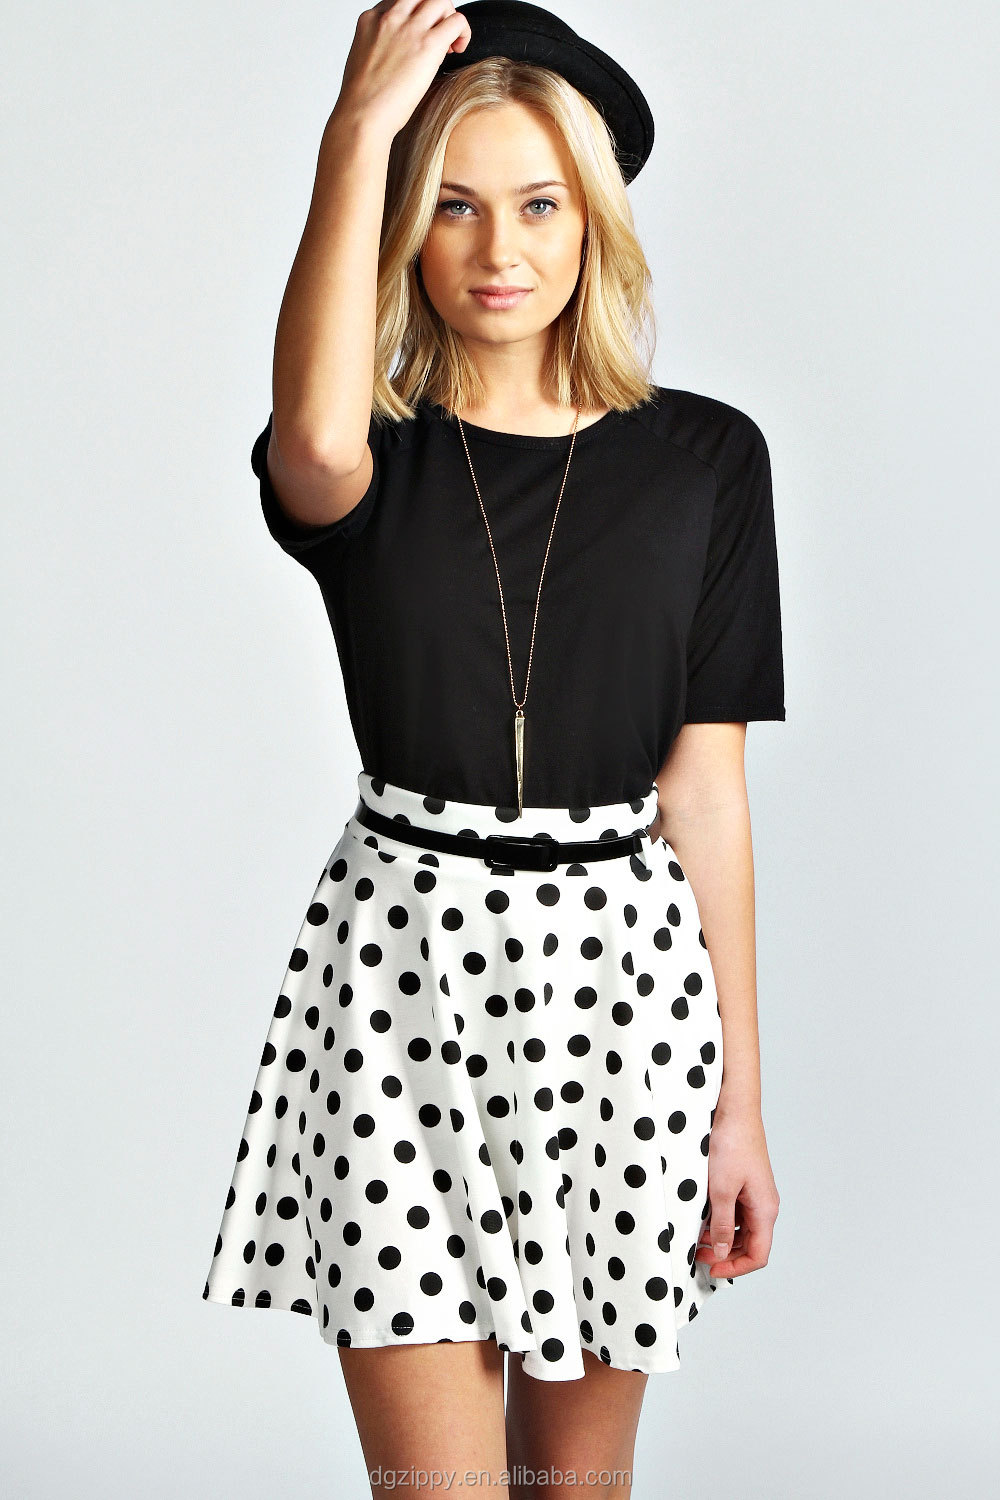 Sexy Polka Dot Print Mini Skirt/latest Design Cute School Girls ...